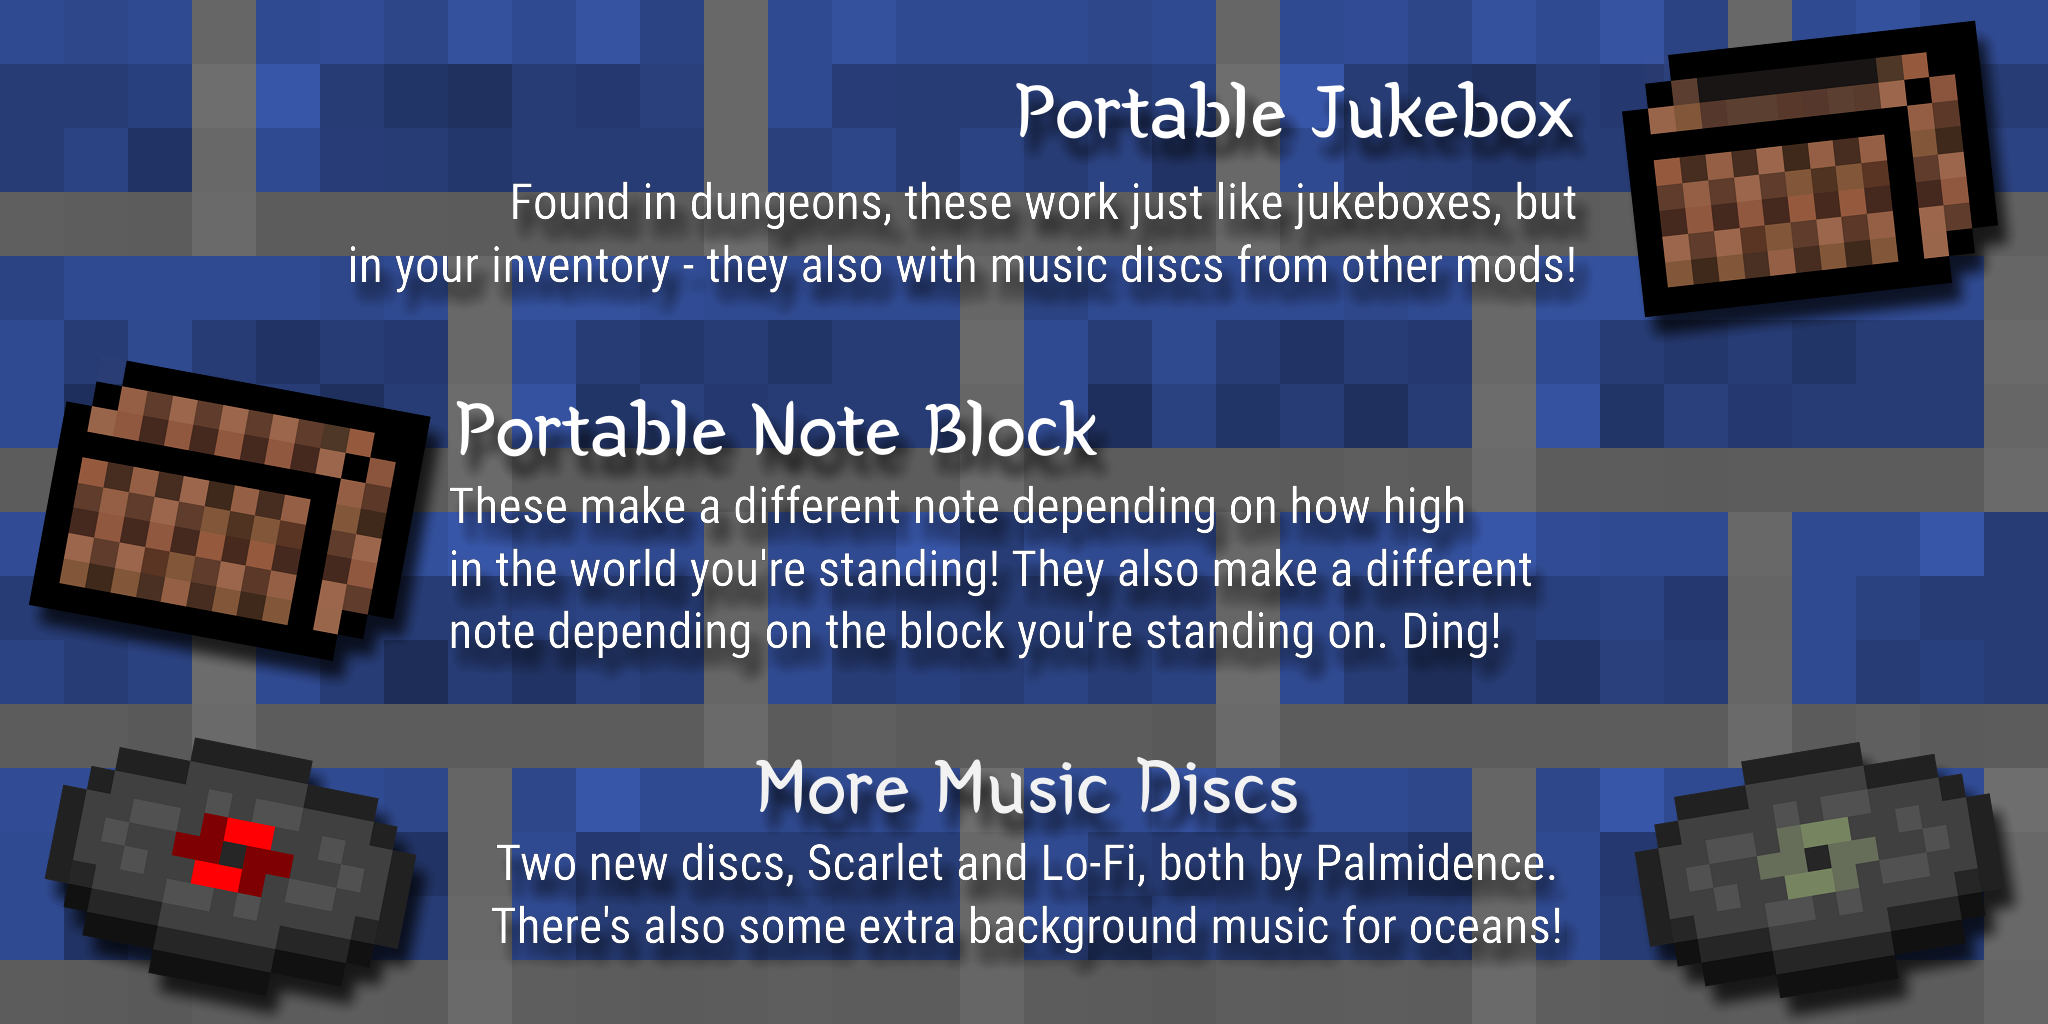 The portable jukebox, portable noteblock, and the two records